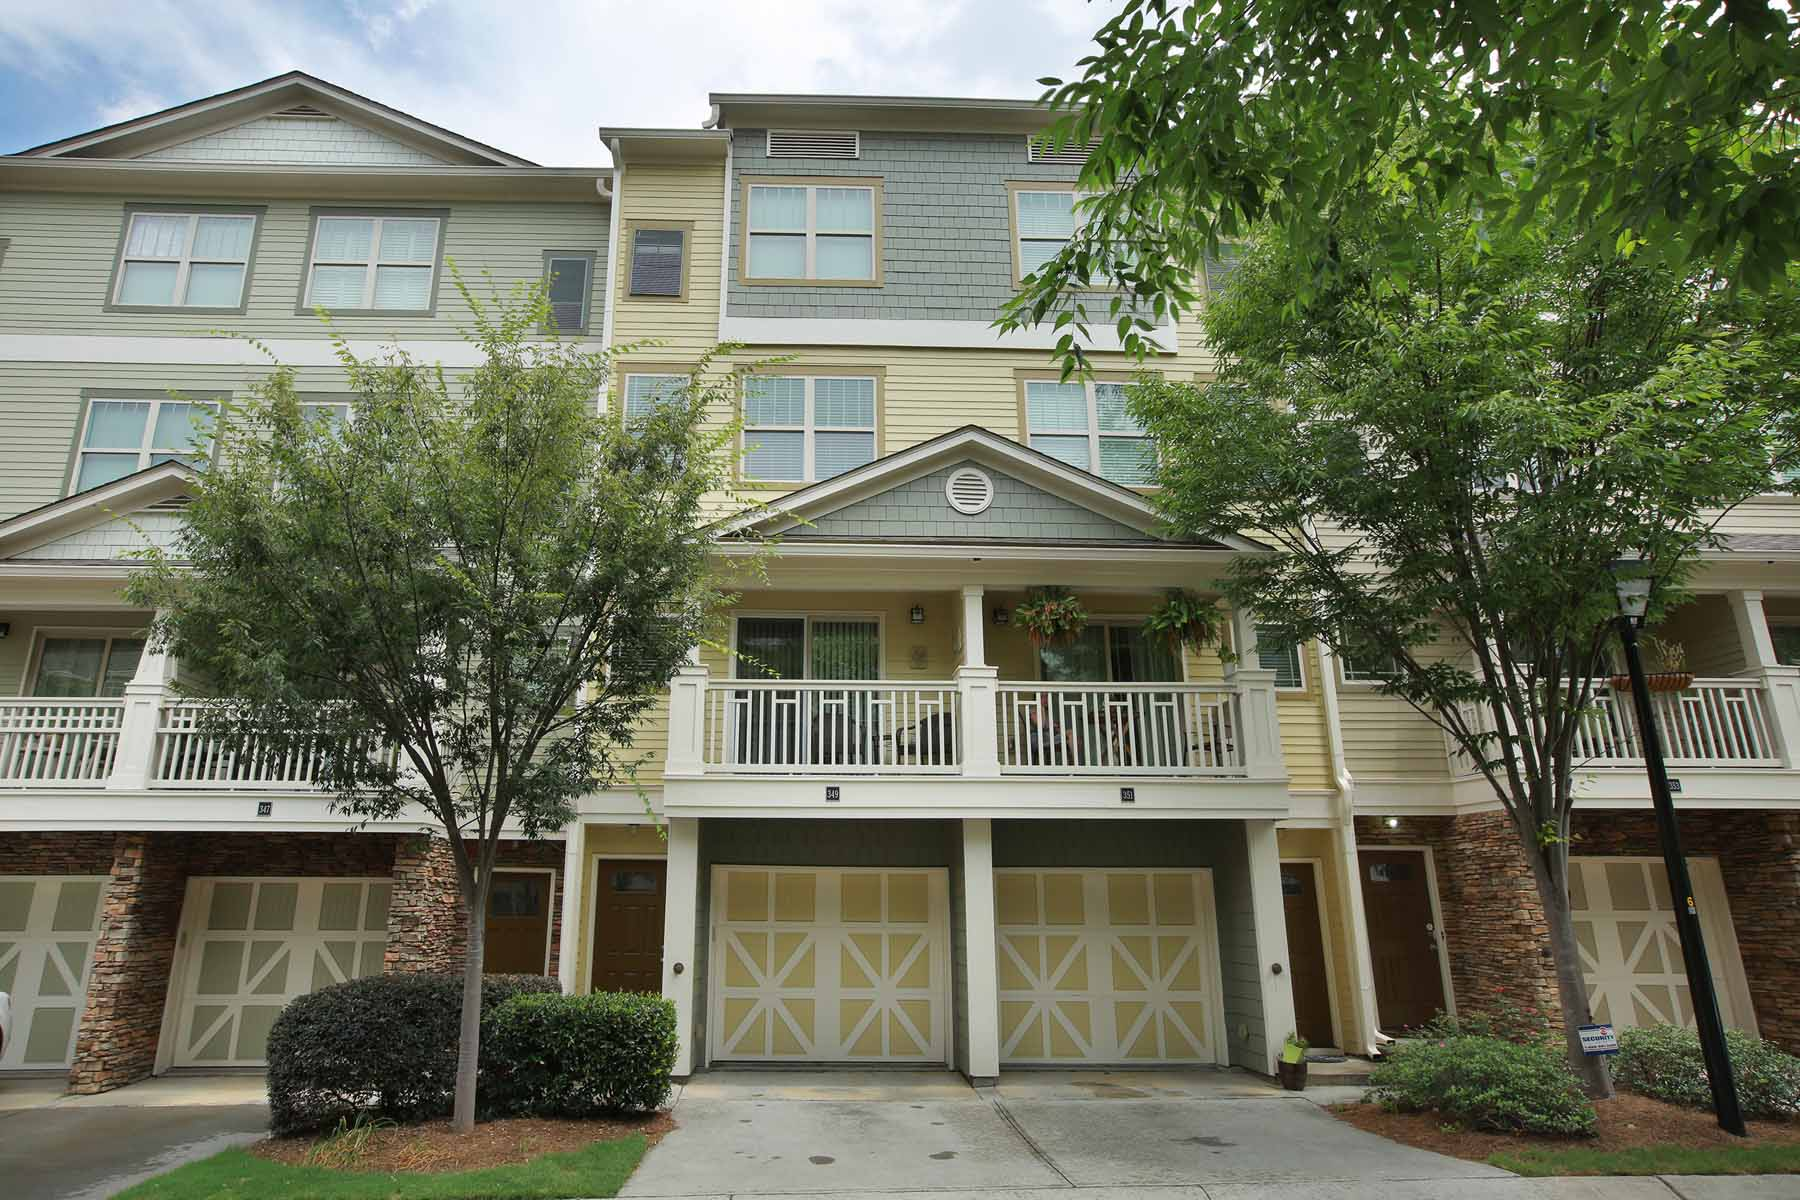 Townhouse for Sale at City Park Townhome in Midtown 216 Semel Circle Unit 349 Atlanta, Georgia, 30309 United States